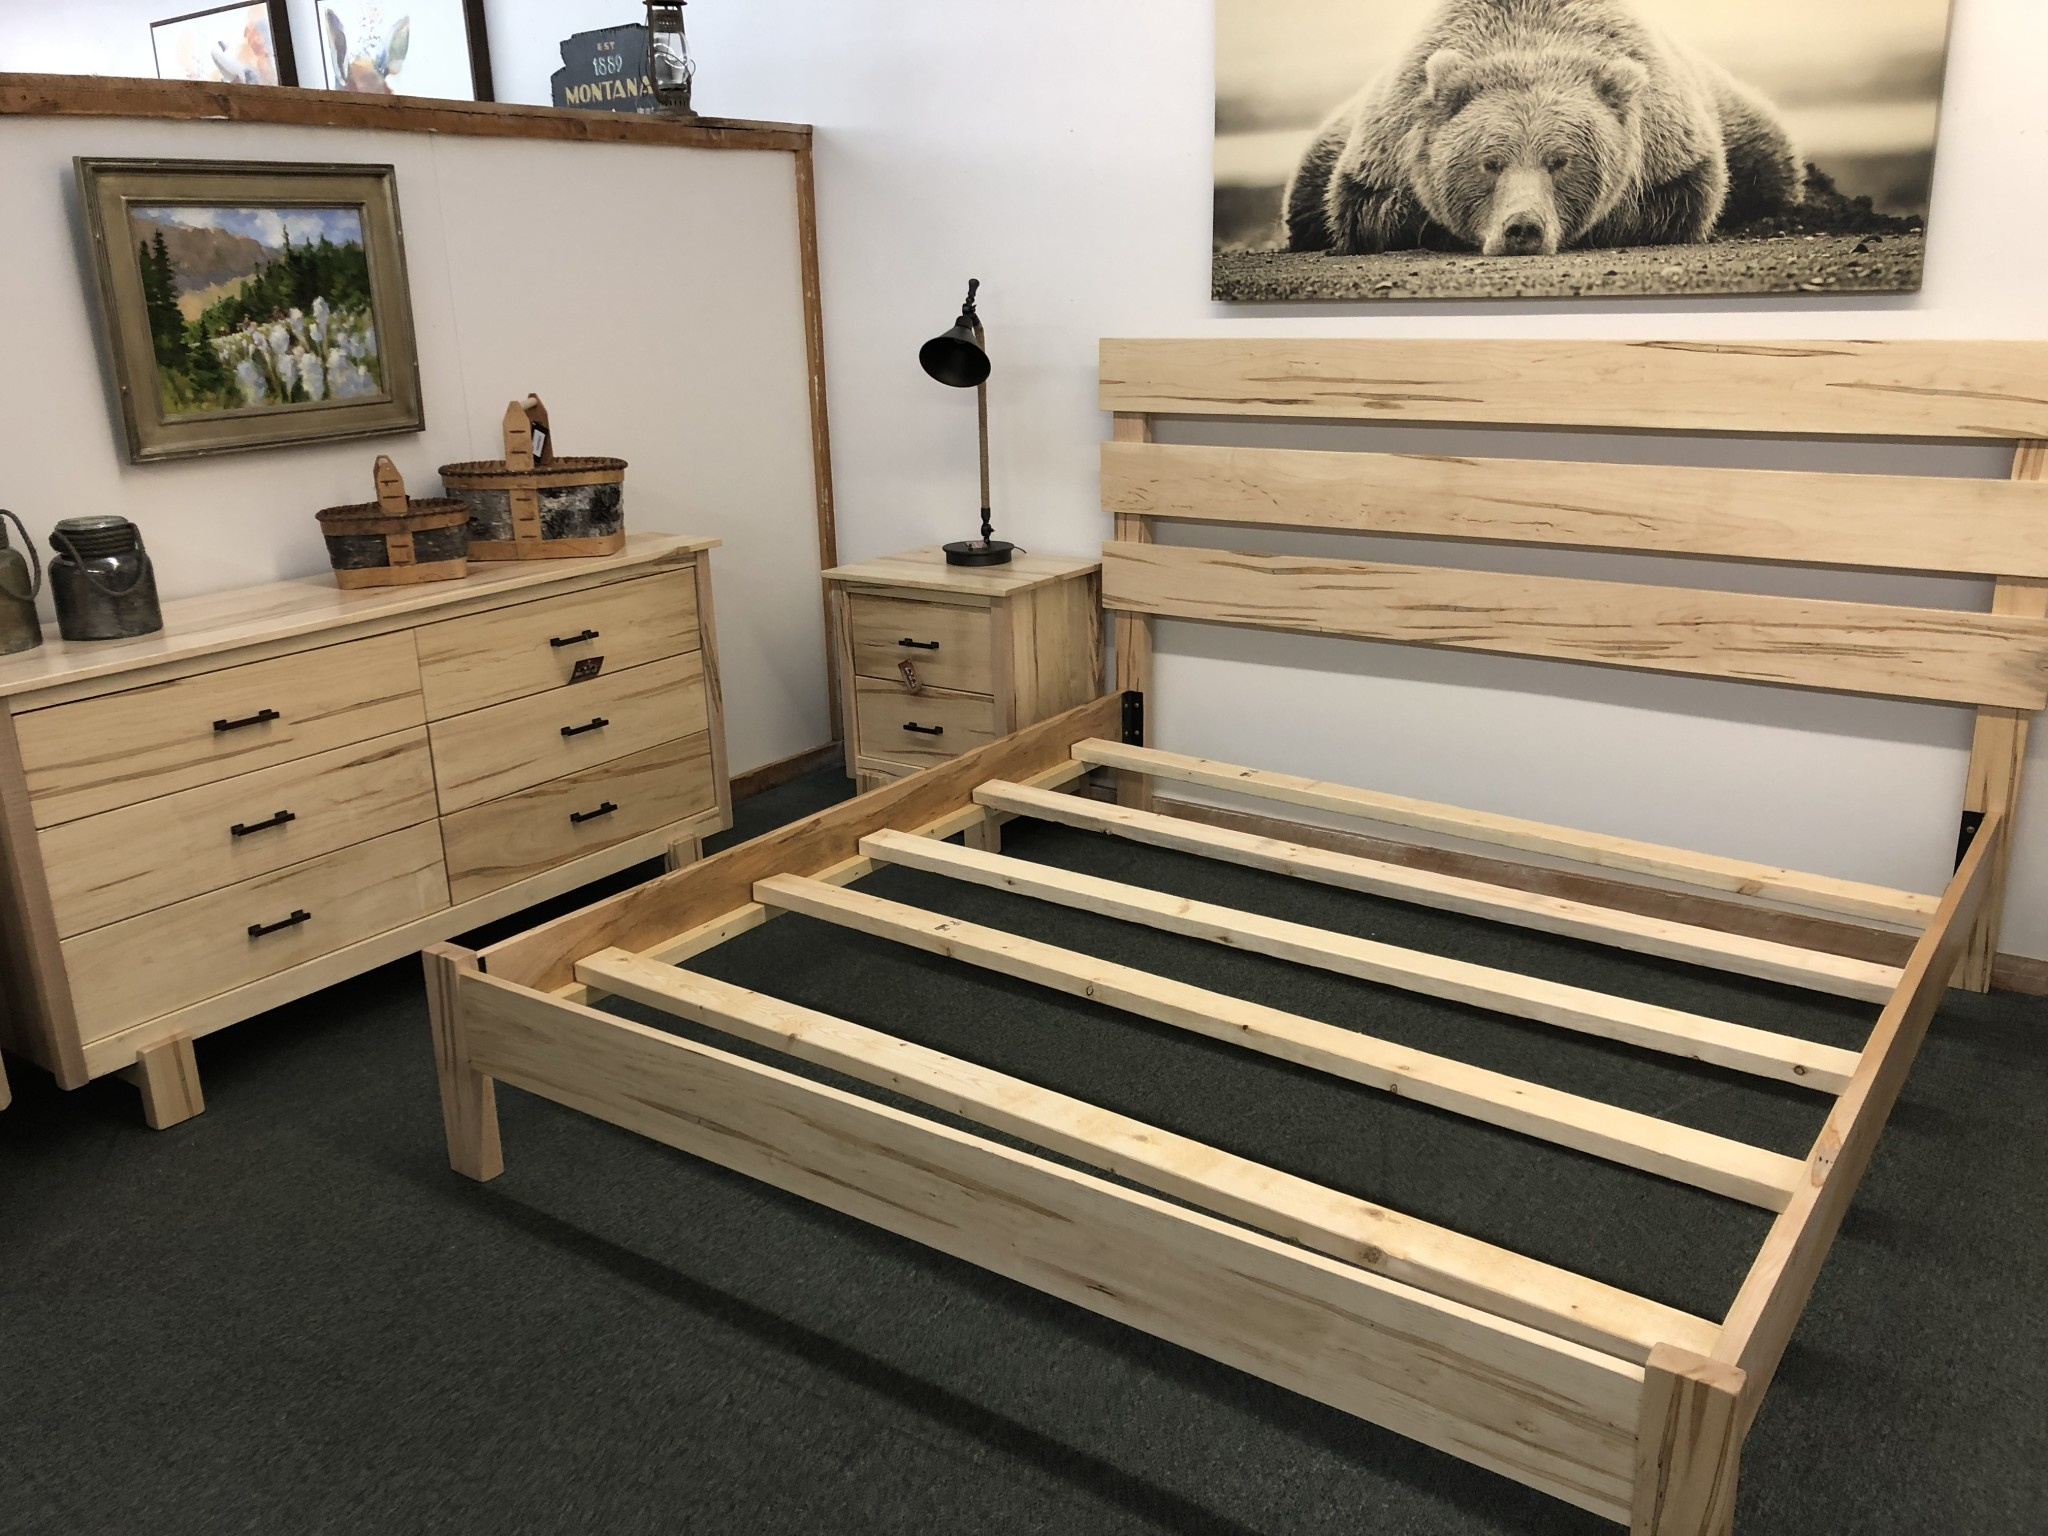 Green Gables Maple Springs Bed - KING